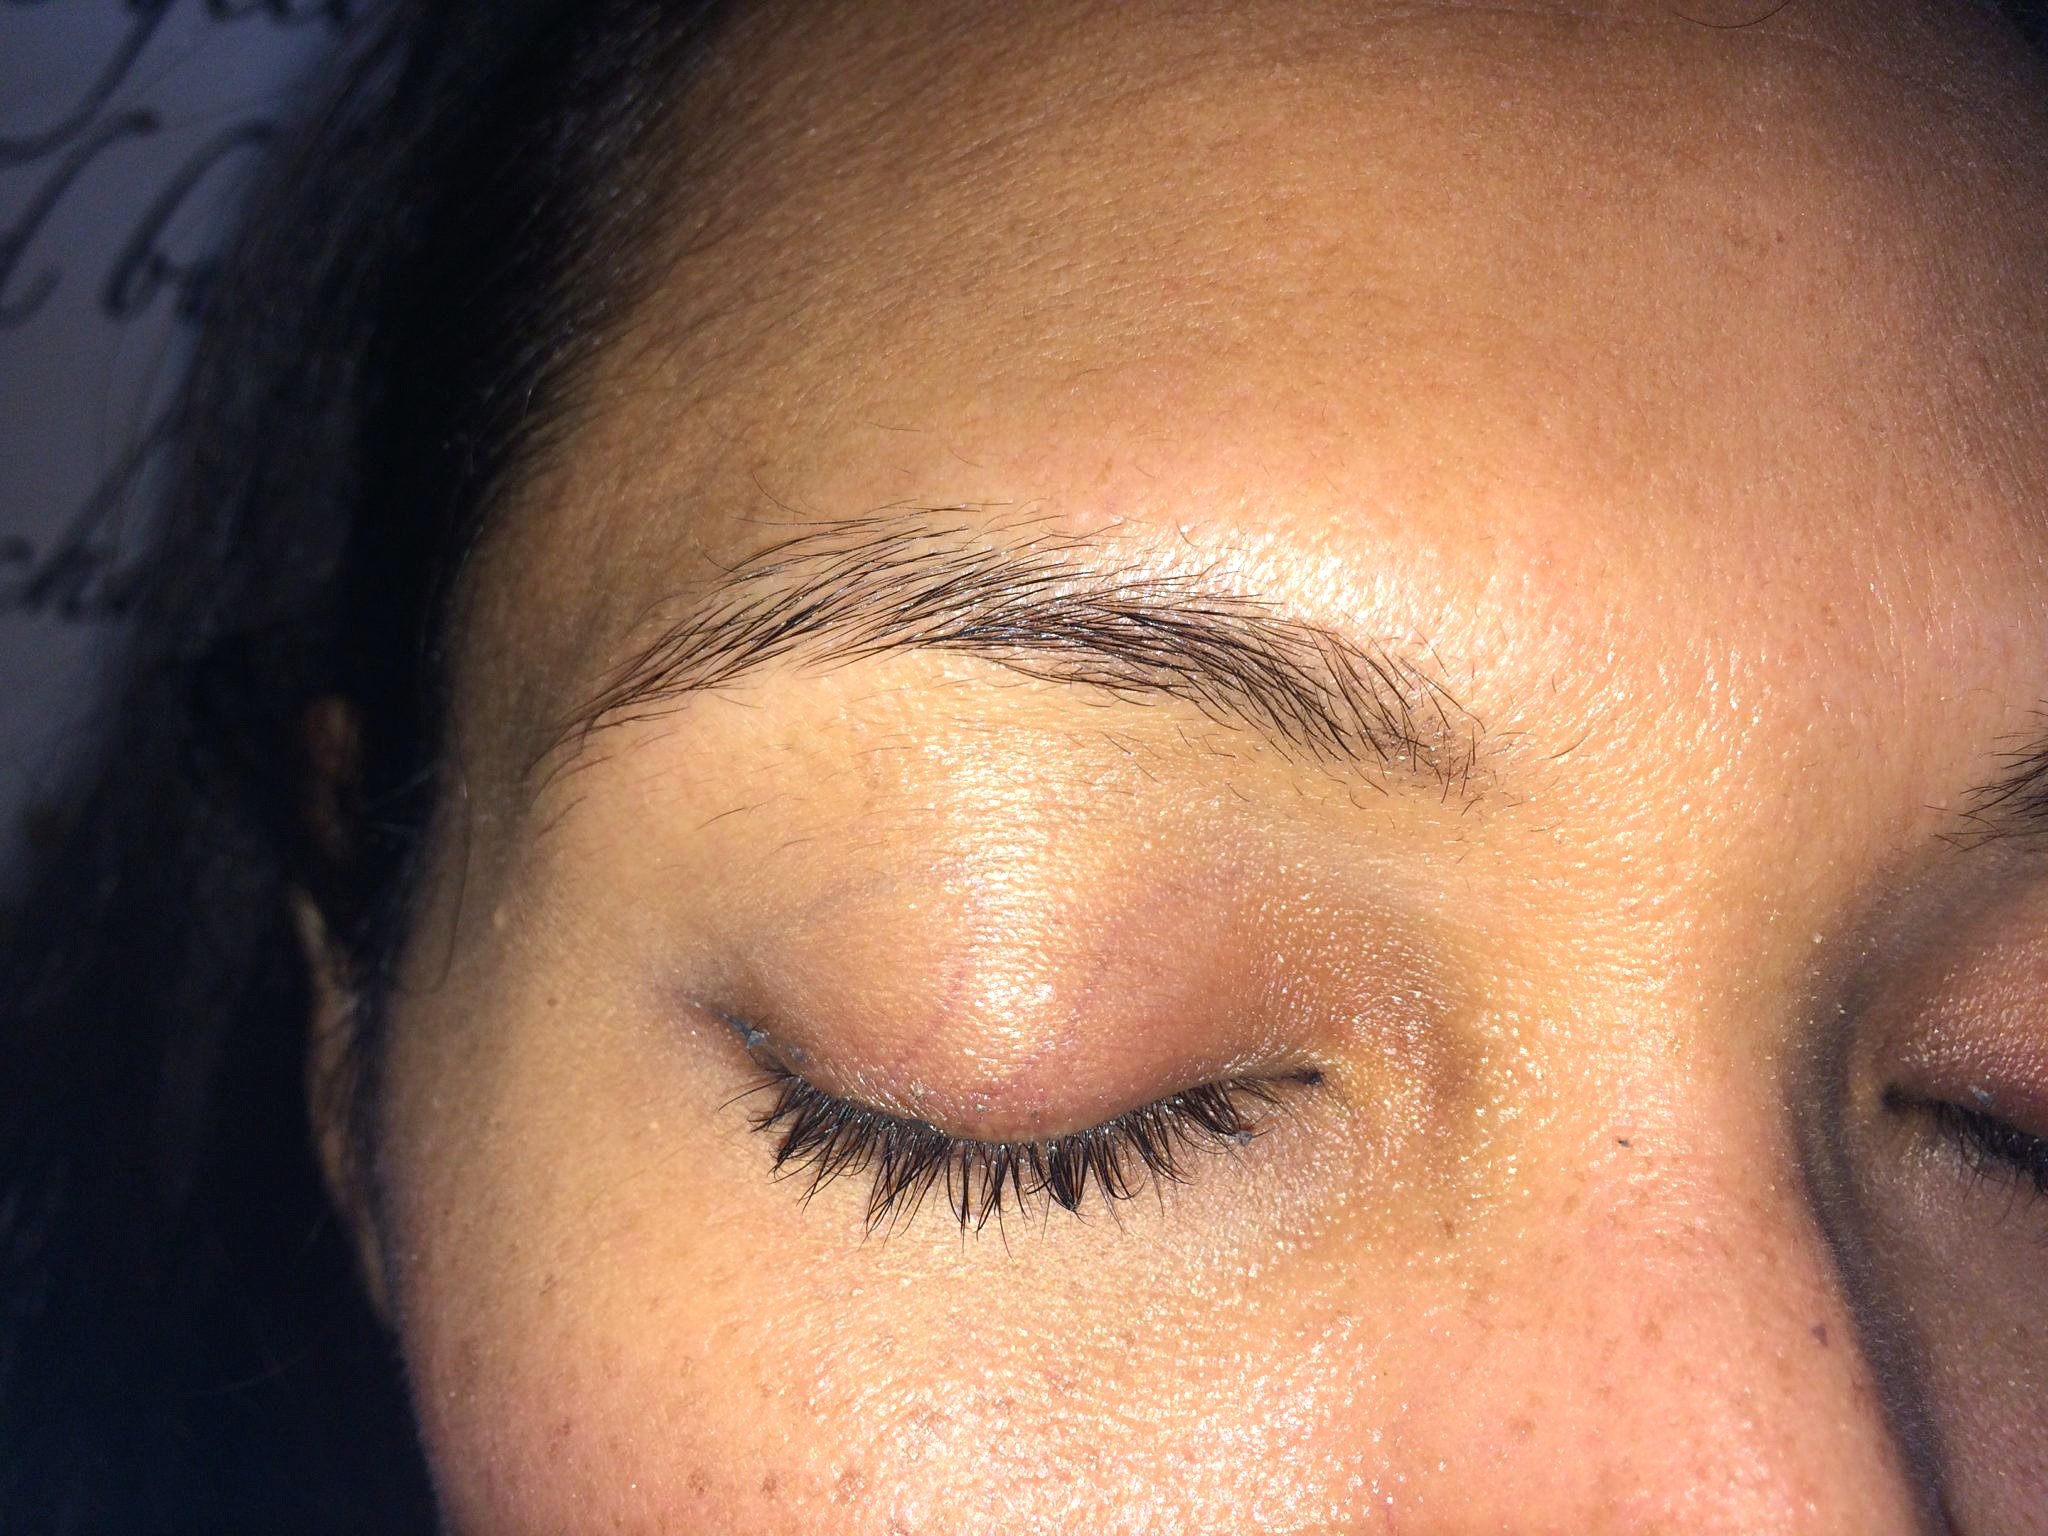 My Eyebrow Embroidery Experience With Flirt 3d Brow Microblading